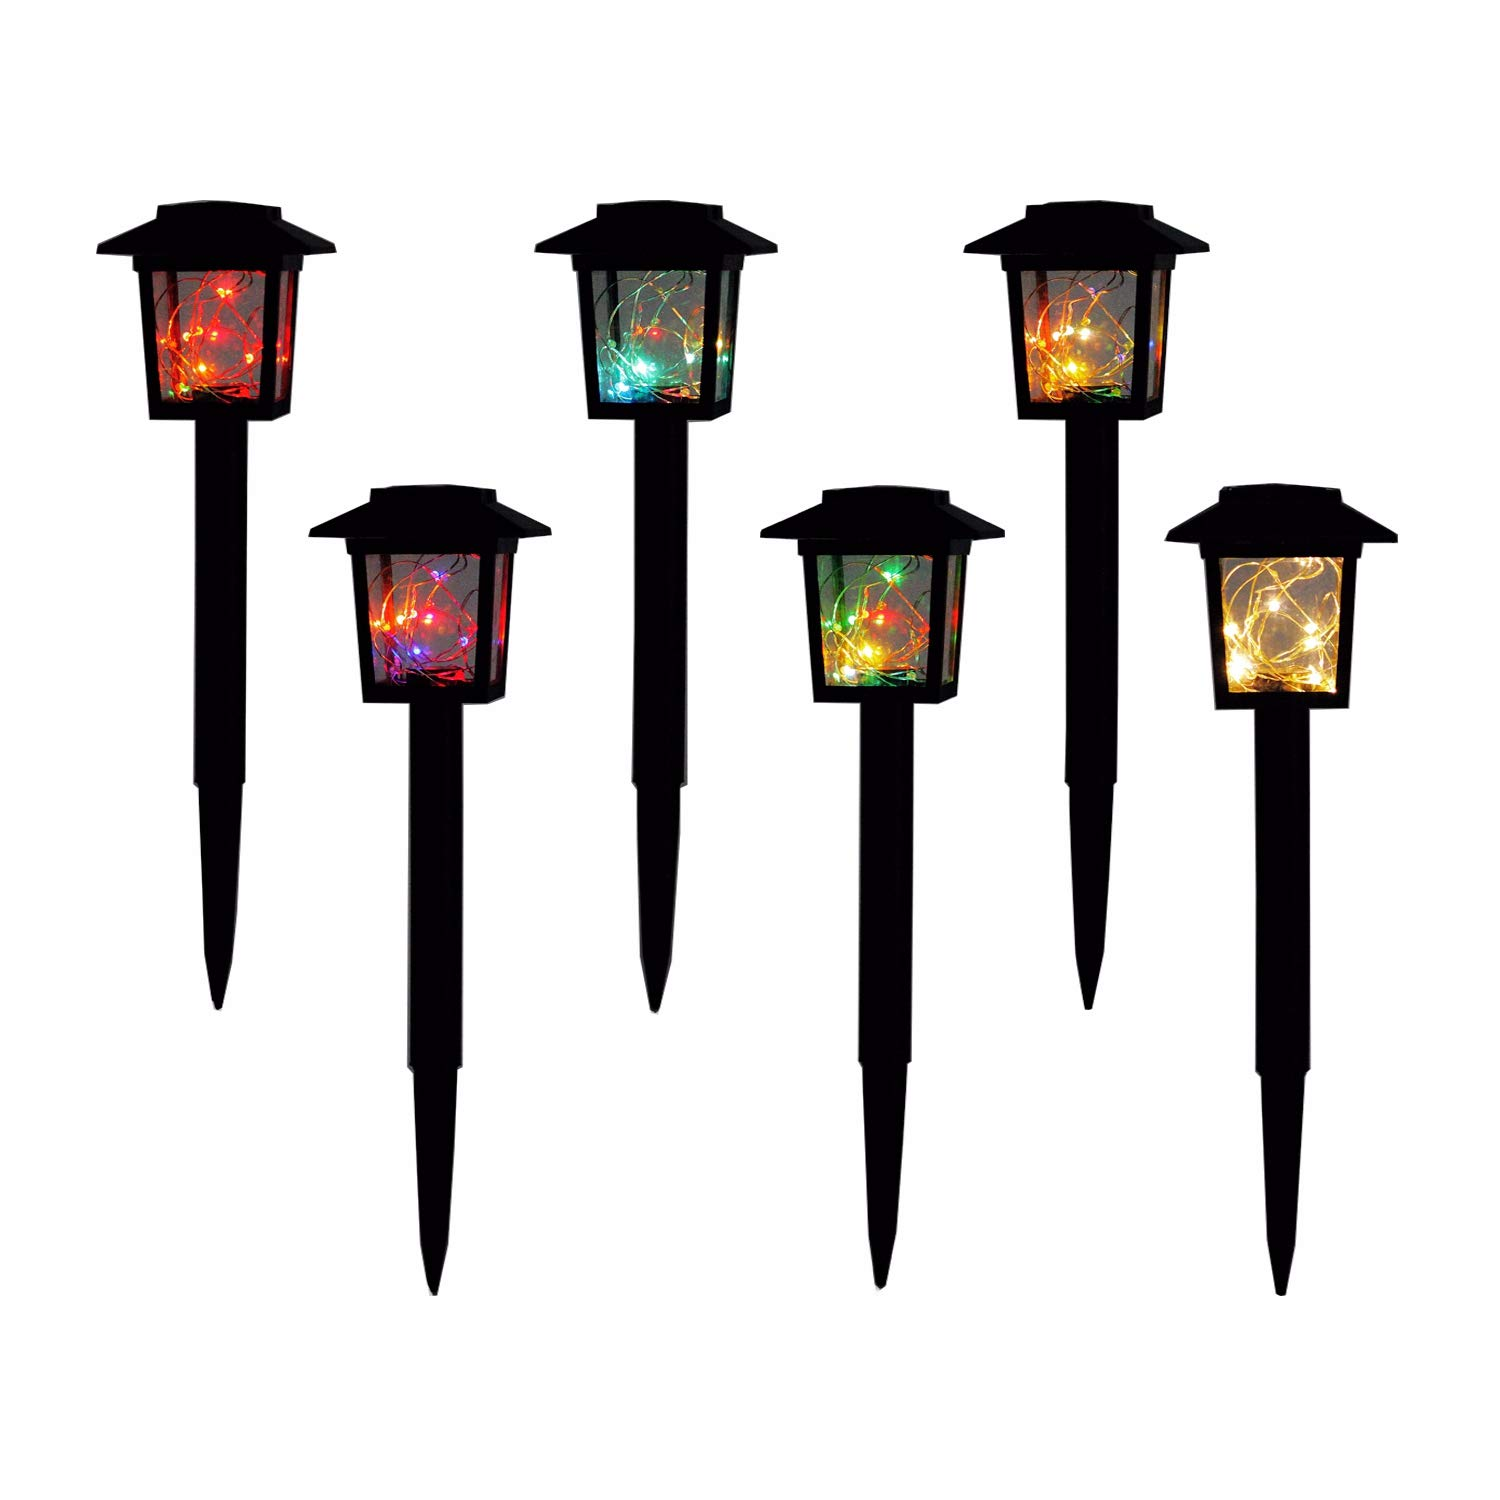 Molcoeur 6 Pack Solar Garden Lights Waterproof Solar Lights Outdoor Solar Stake Landscape Lighting for Pathway Patio Lawn Yard Driveway Wkway(Warm White/Color Changing)